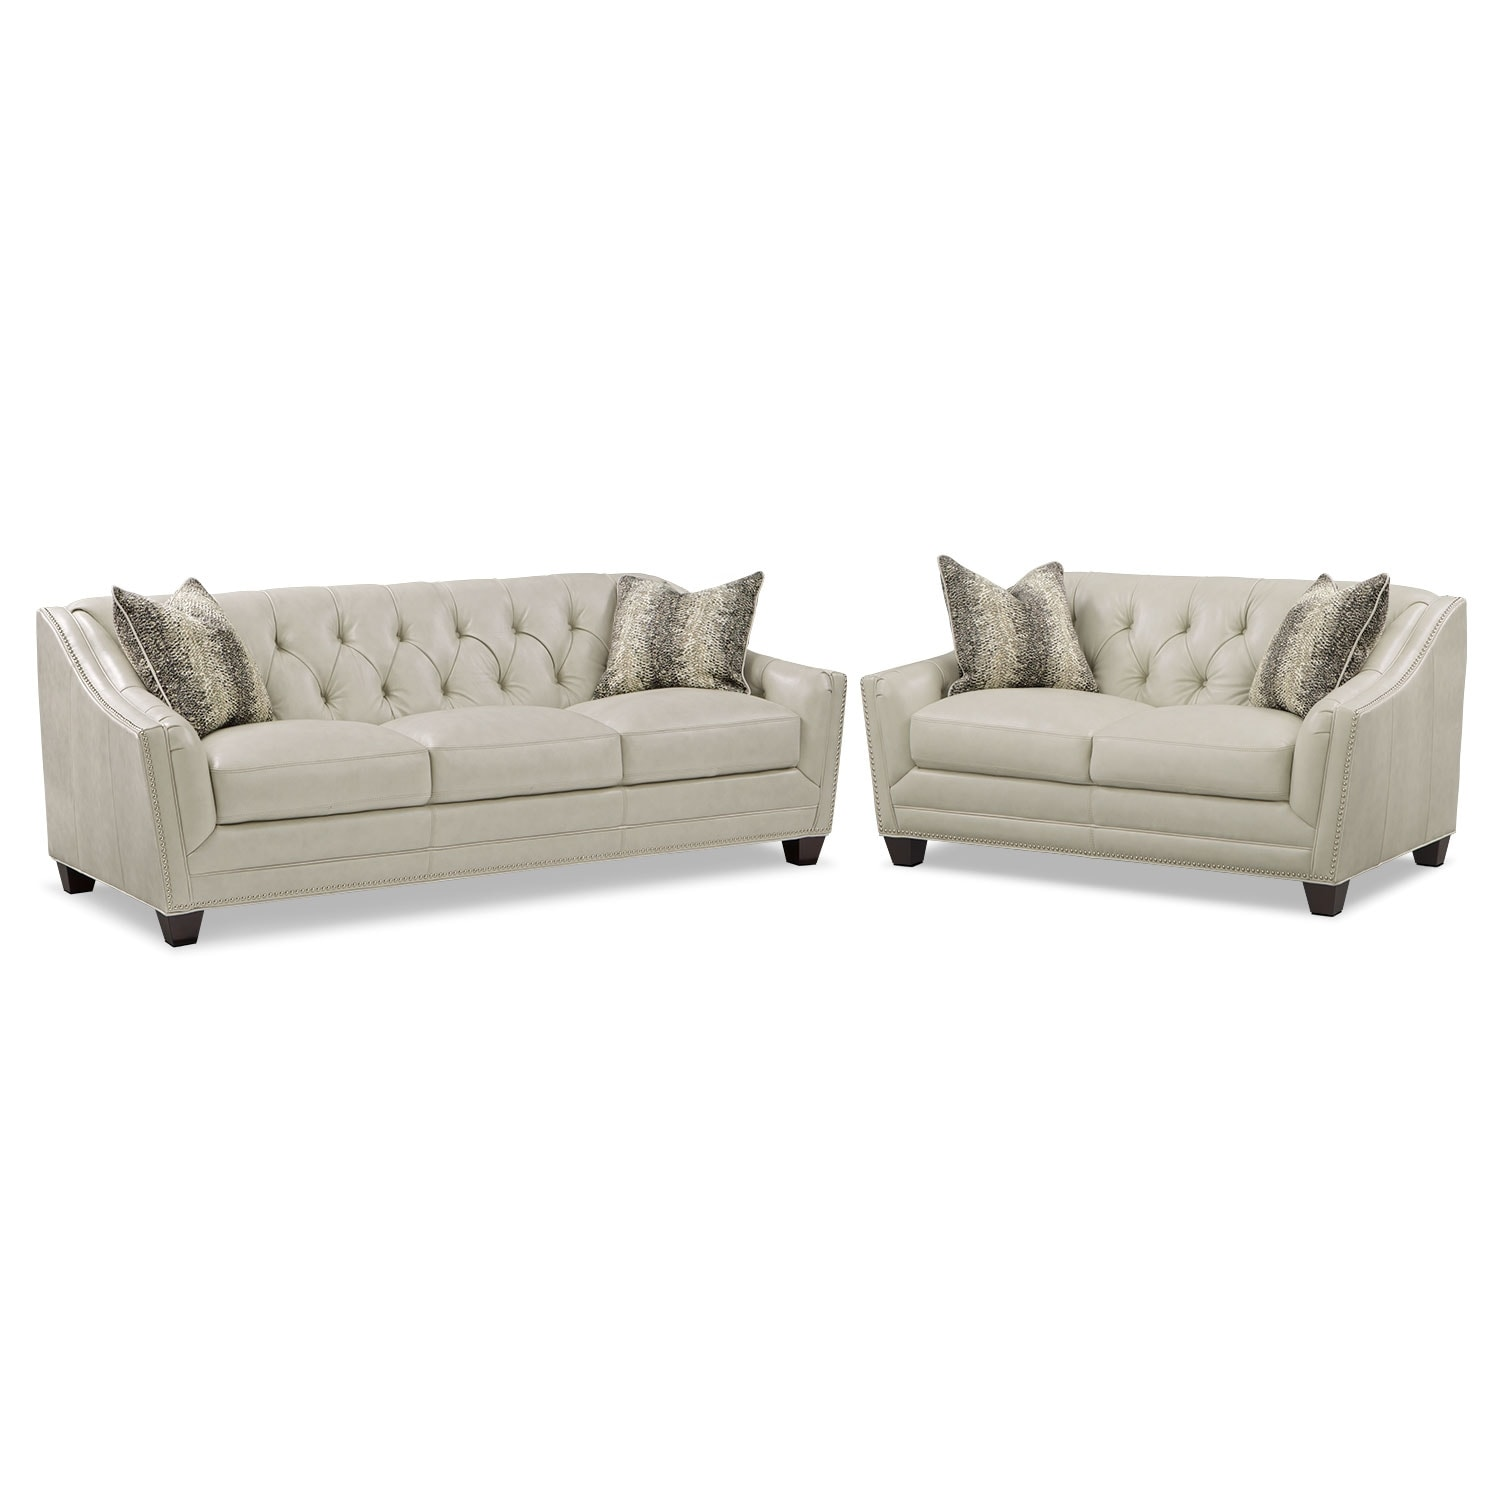 Living Room Furniture - Alexis Vanilla 2 Pc. Living Room